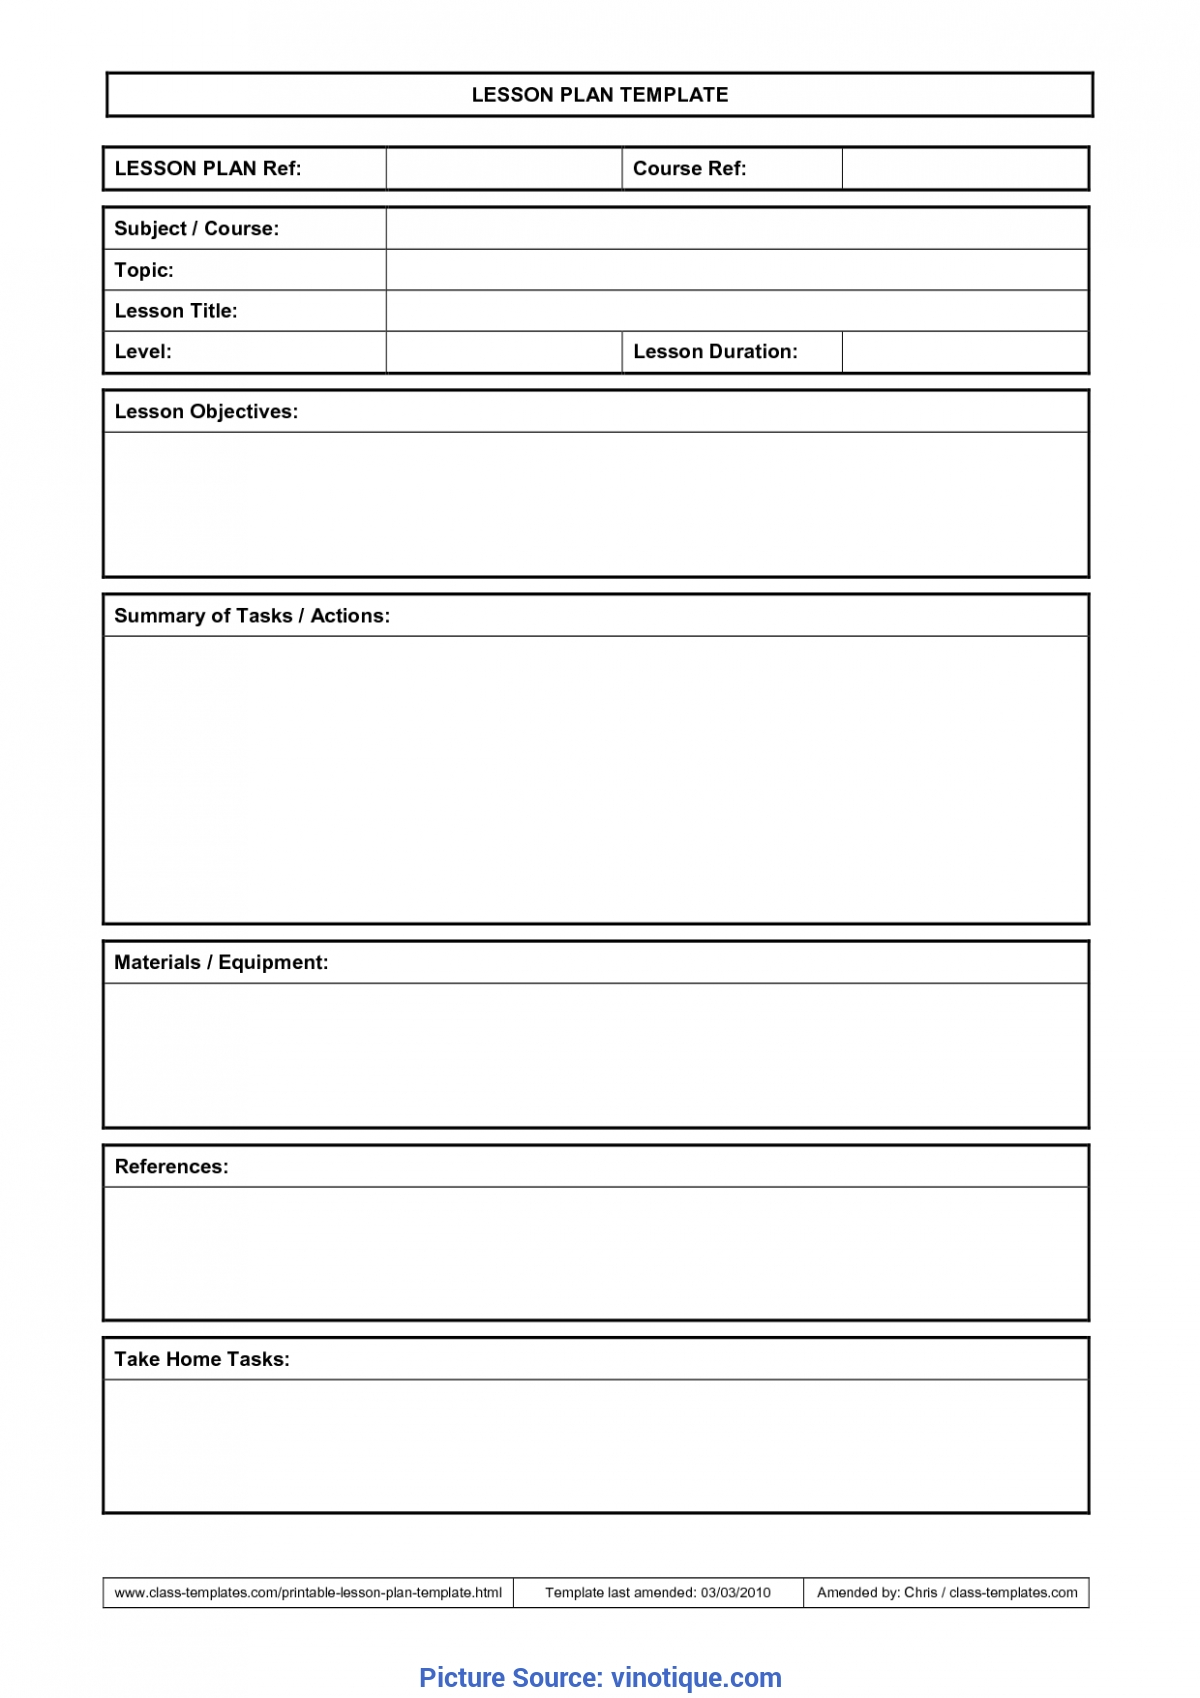 Simple Lesson Plans For Sale Caps For Sale Lesson Plans  Lesson Plan Template For Church Printable